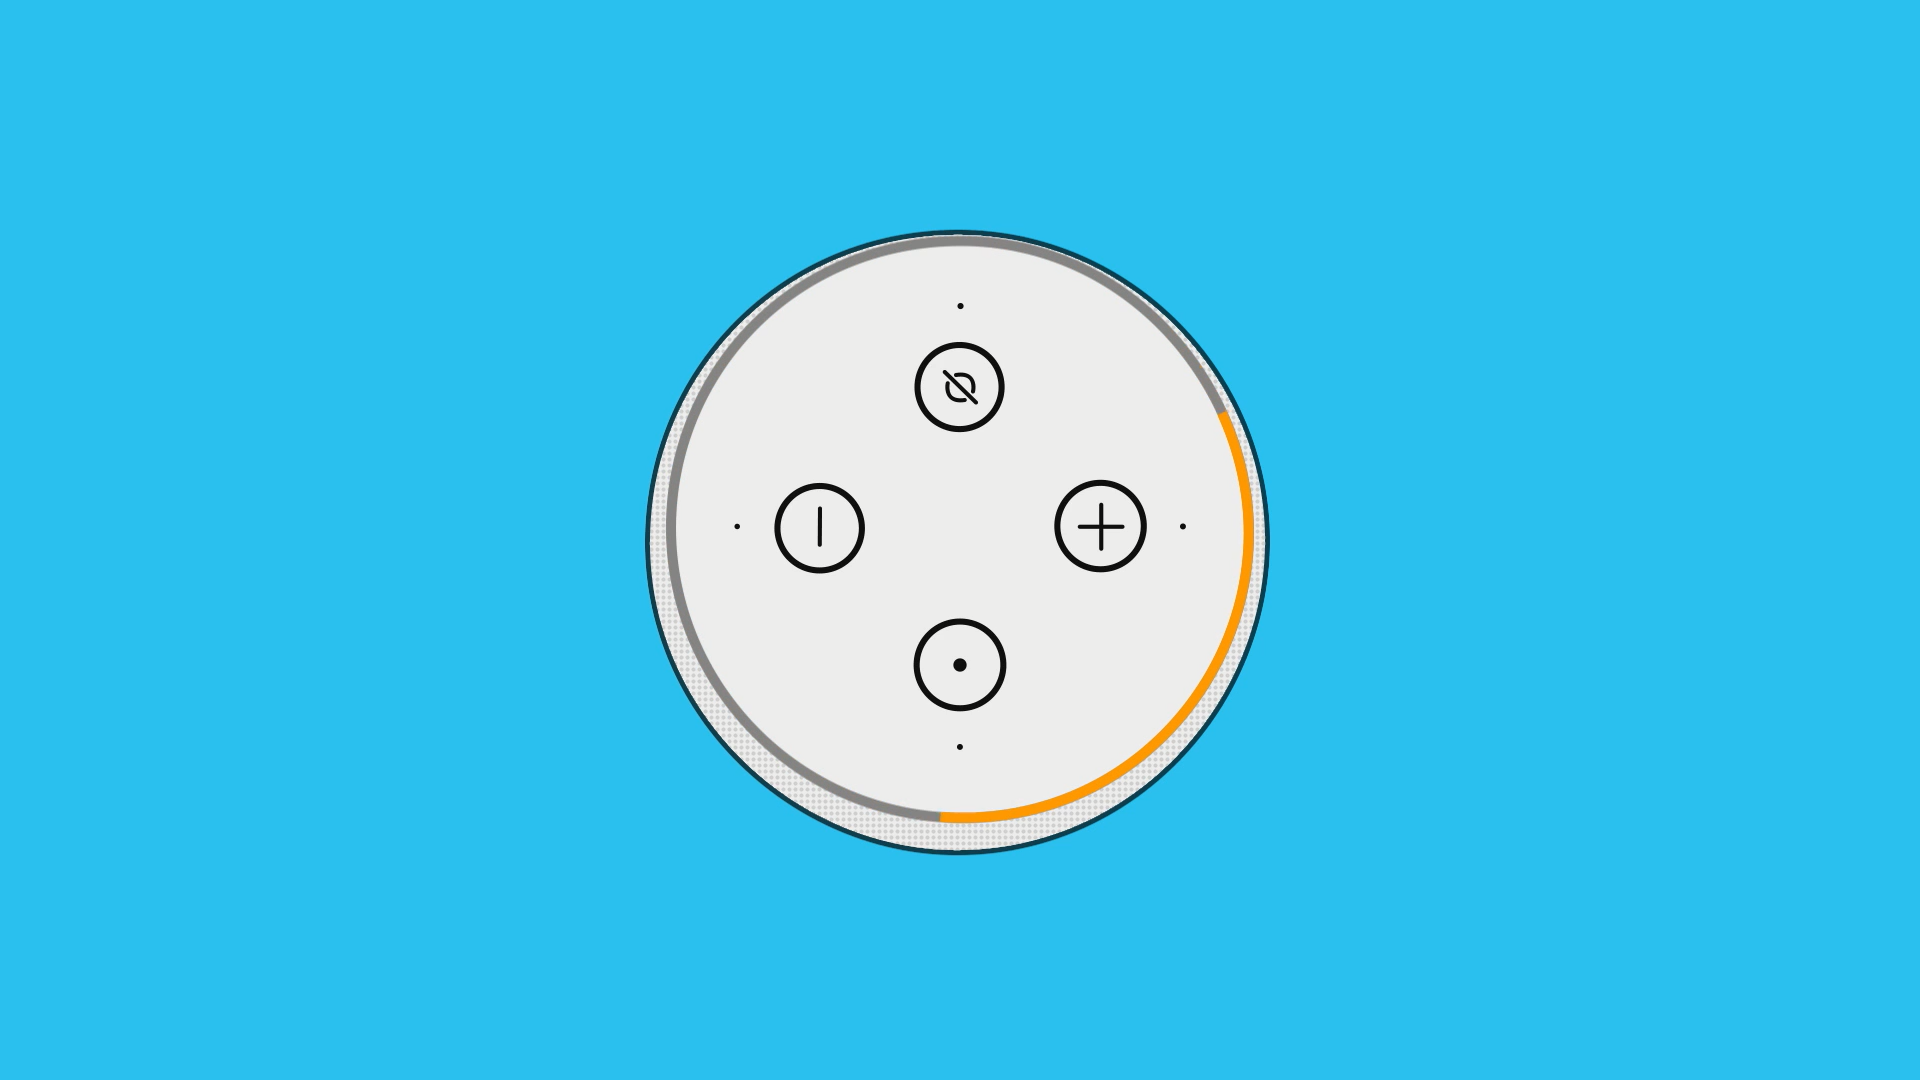 Illustration of the top view of an Amazon Echo device. The ring light is orange.